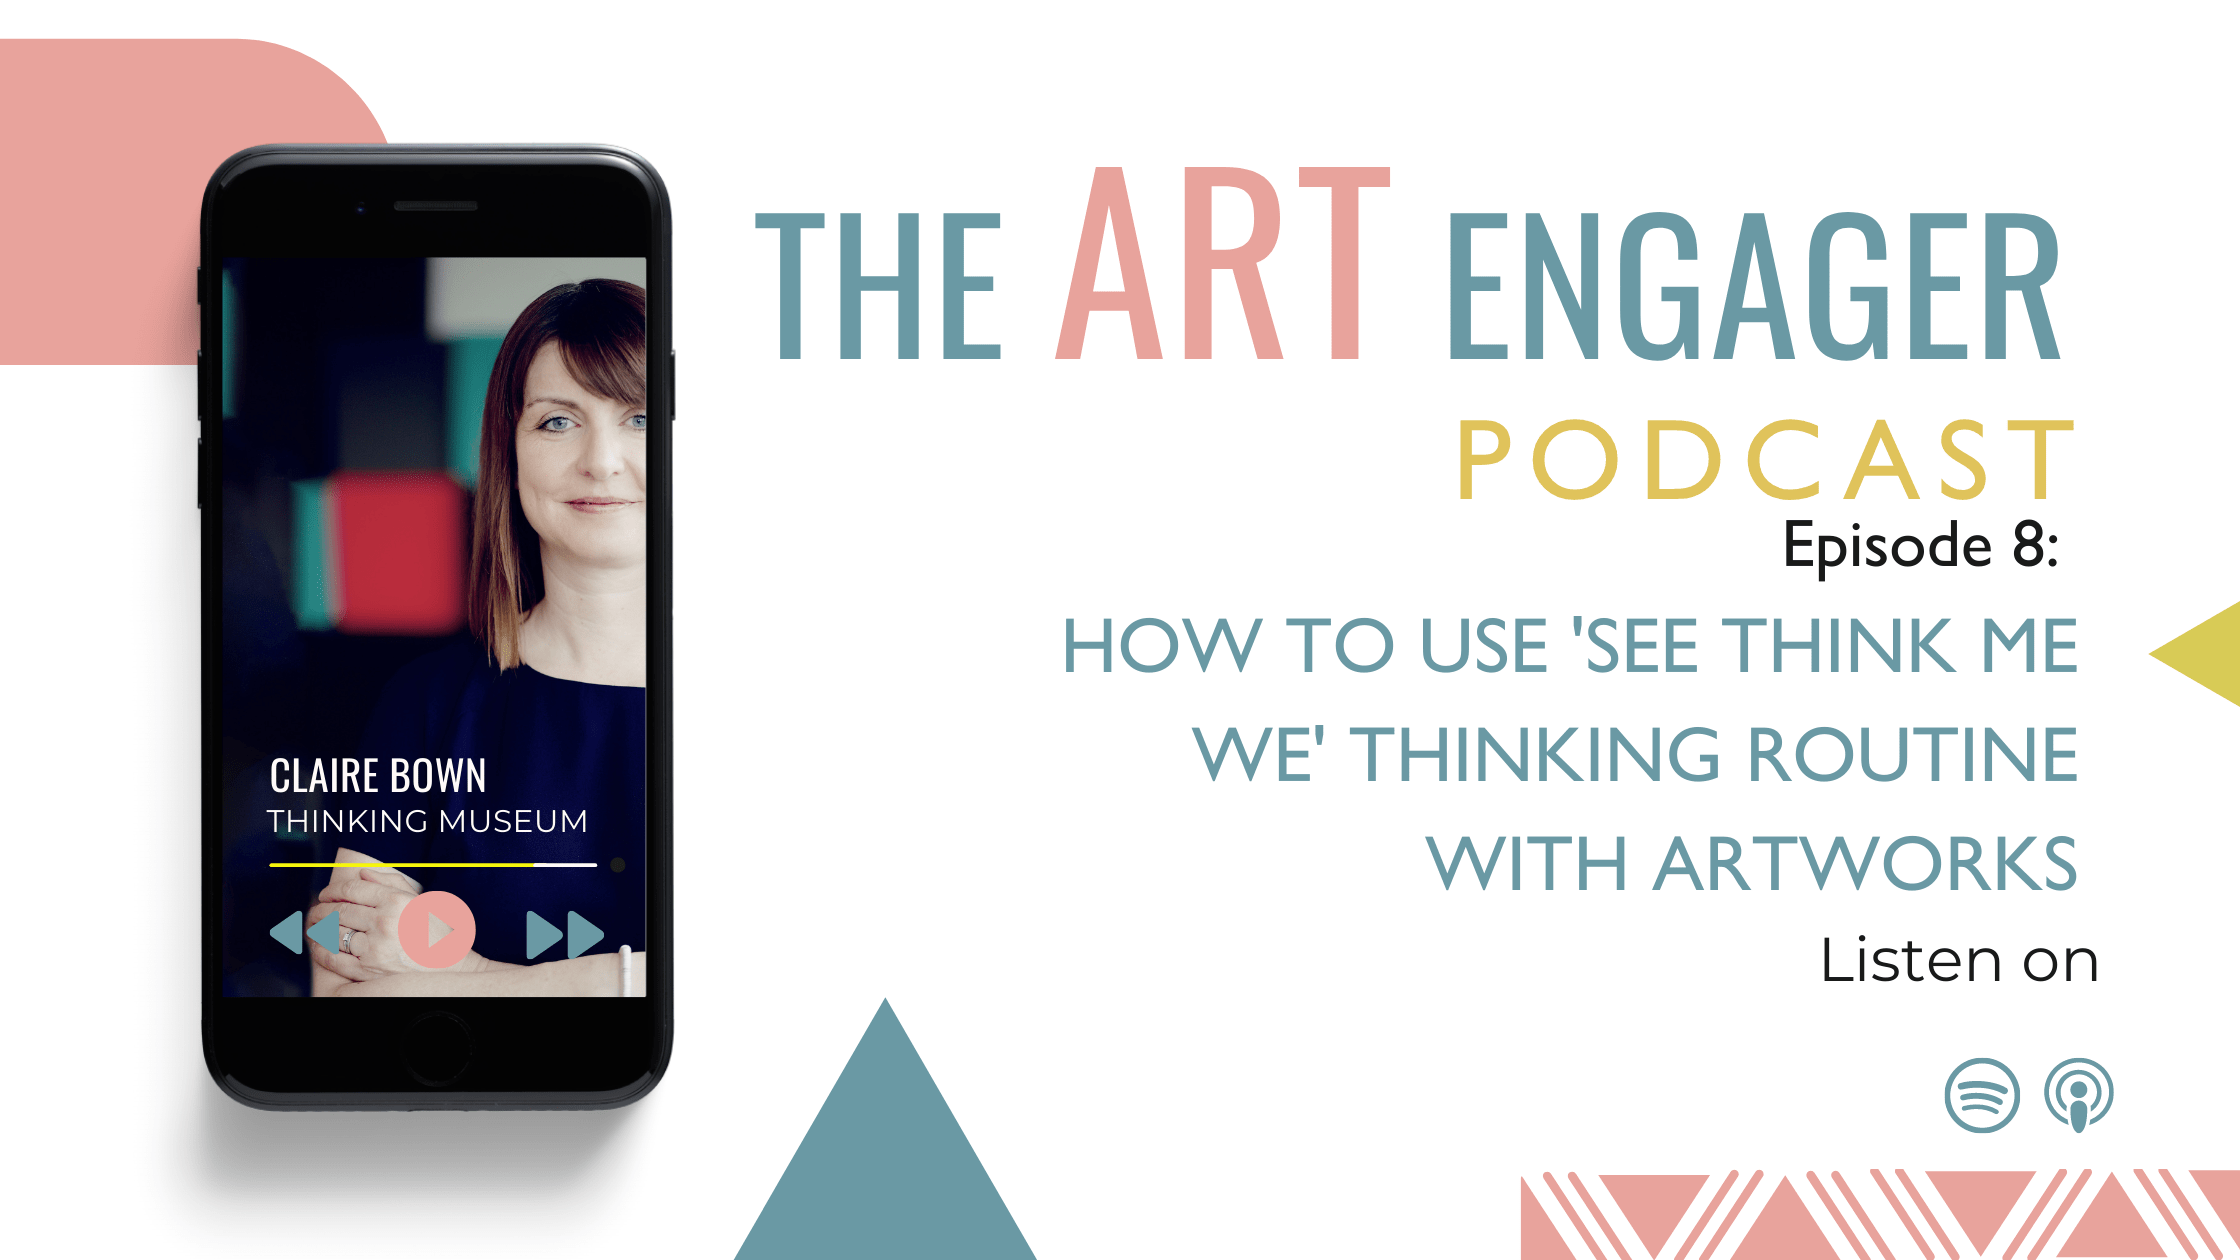 How to Use See Think Me We Thinking Routine with Artworks